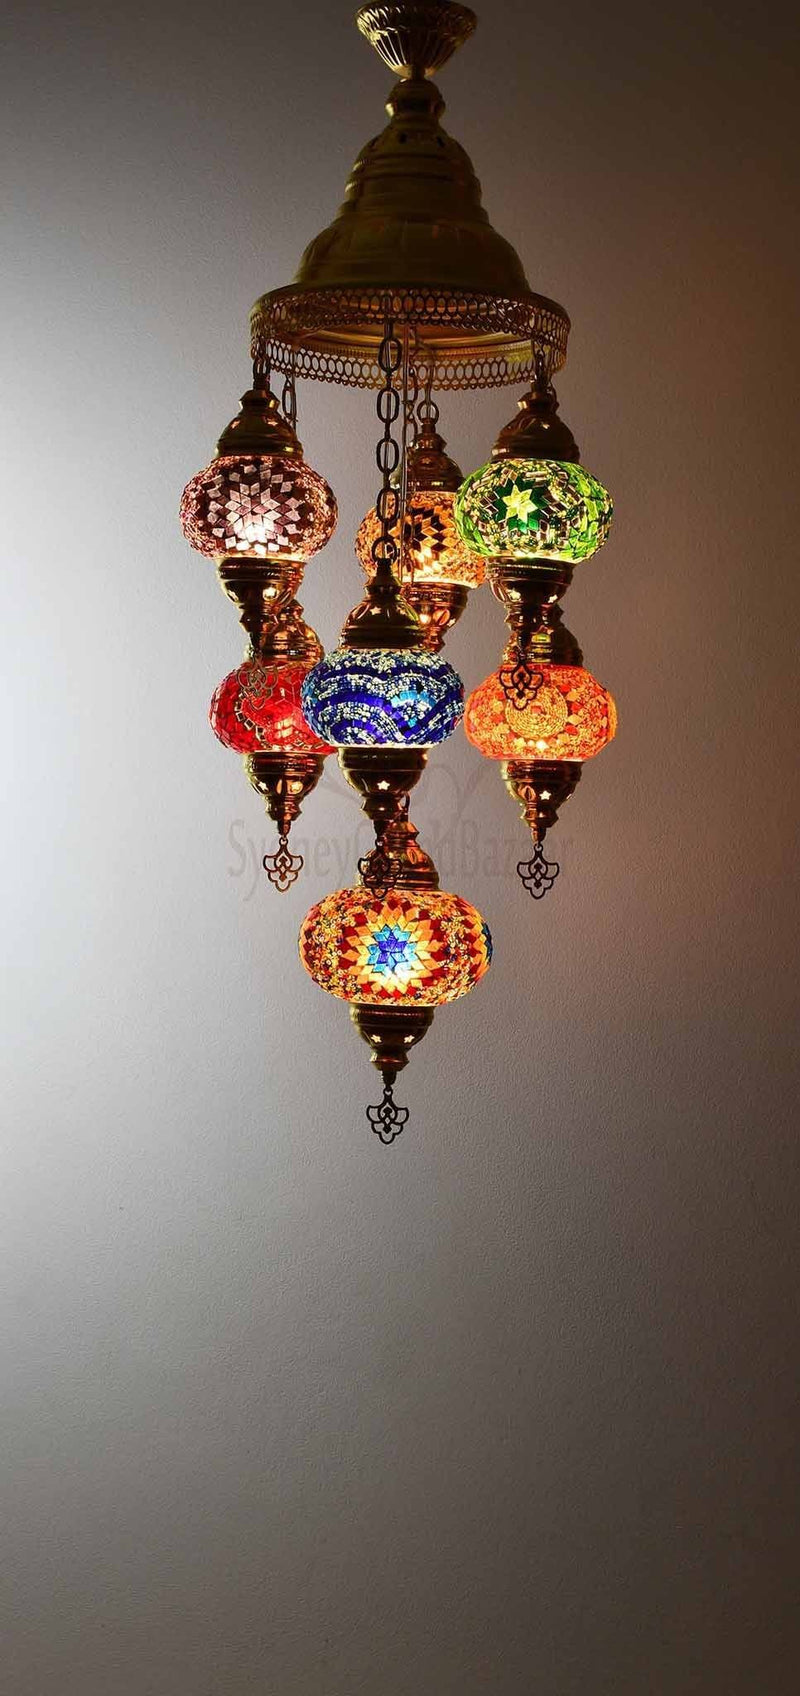 Turkish Mosaic Pendant Light 7 Globes in Gold Lighting Sydney Grand Bazaar Mixed